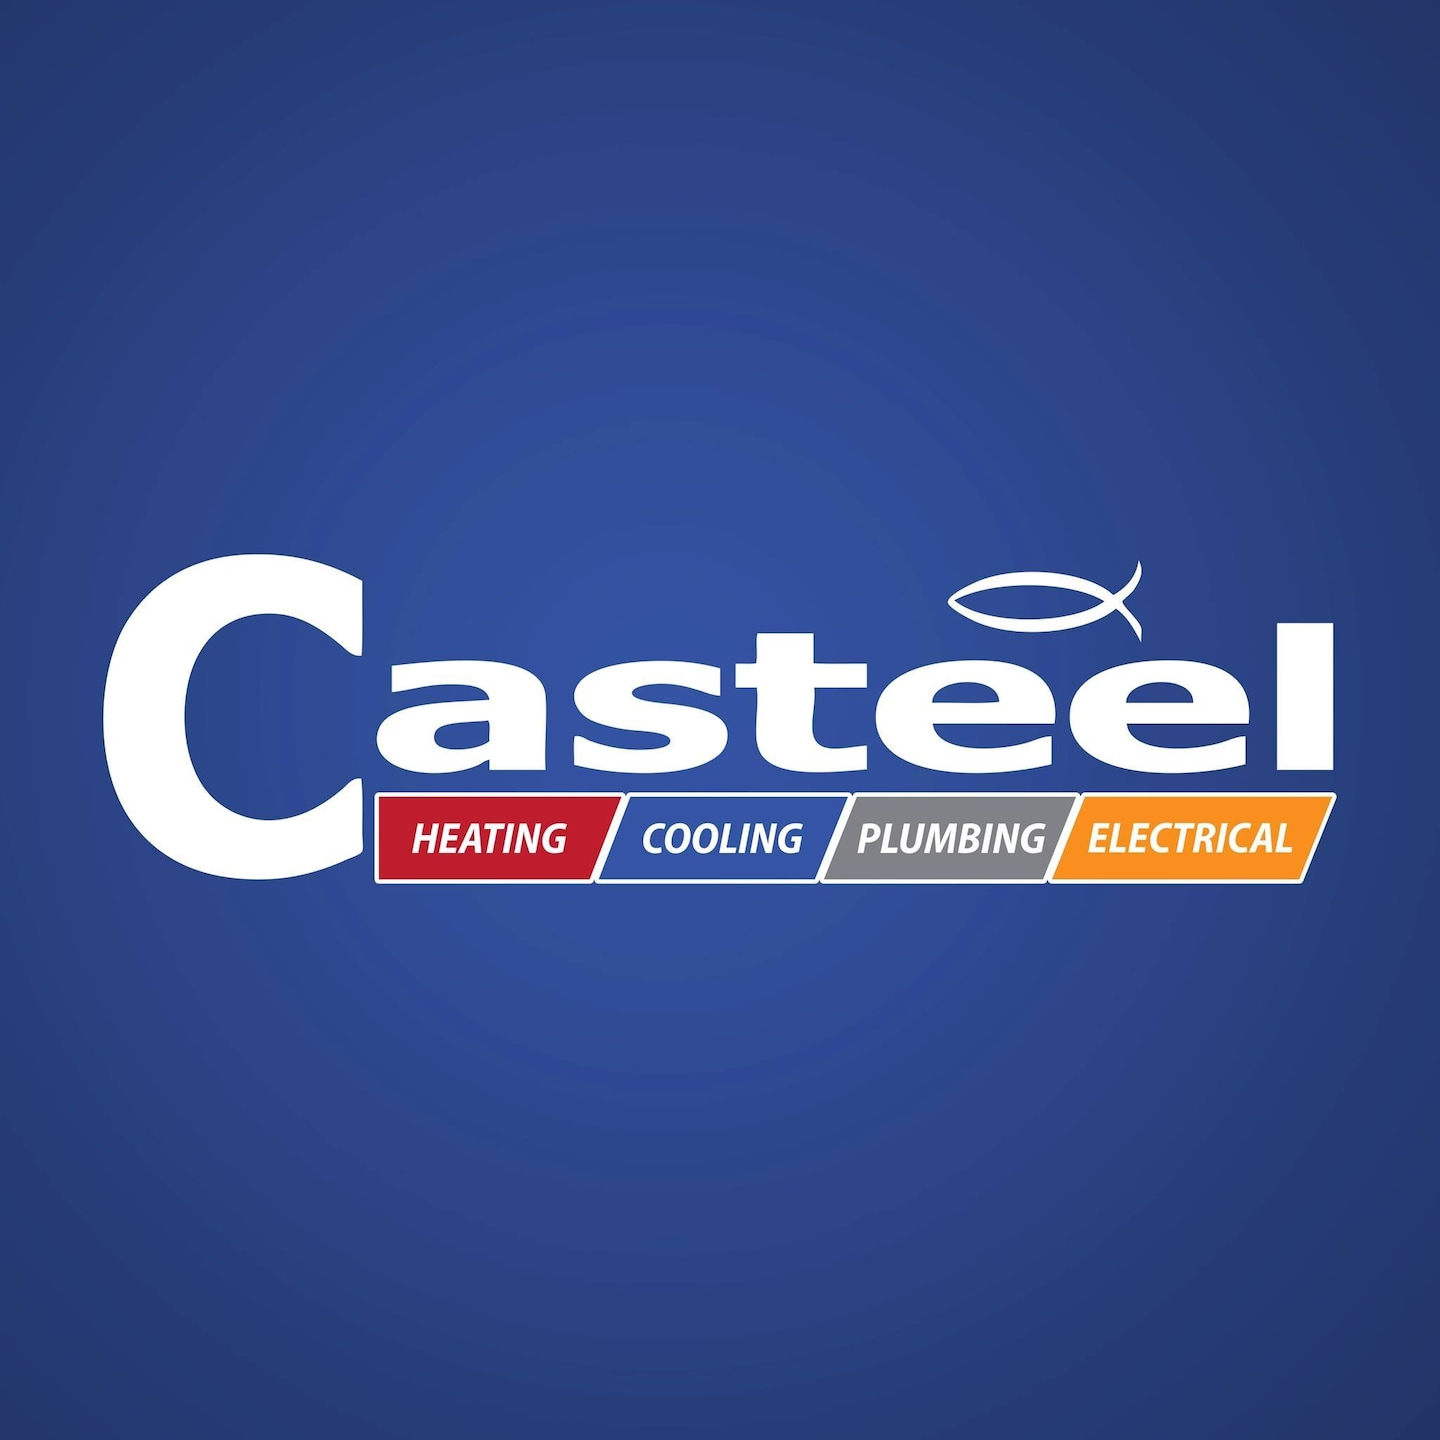 Casteel Heating, Cooling, Plumbing & Electrical